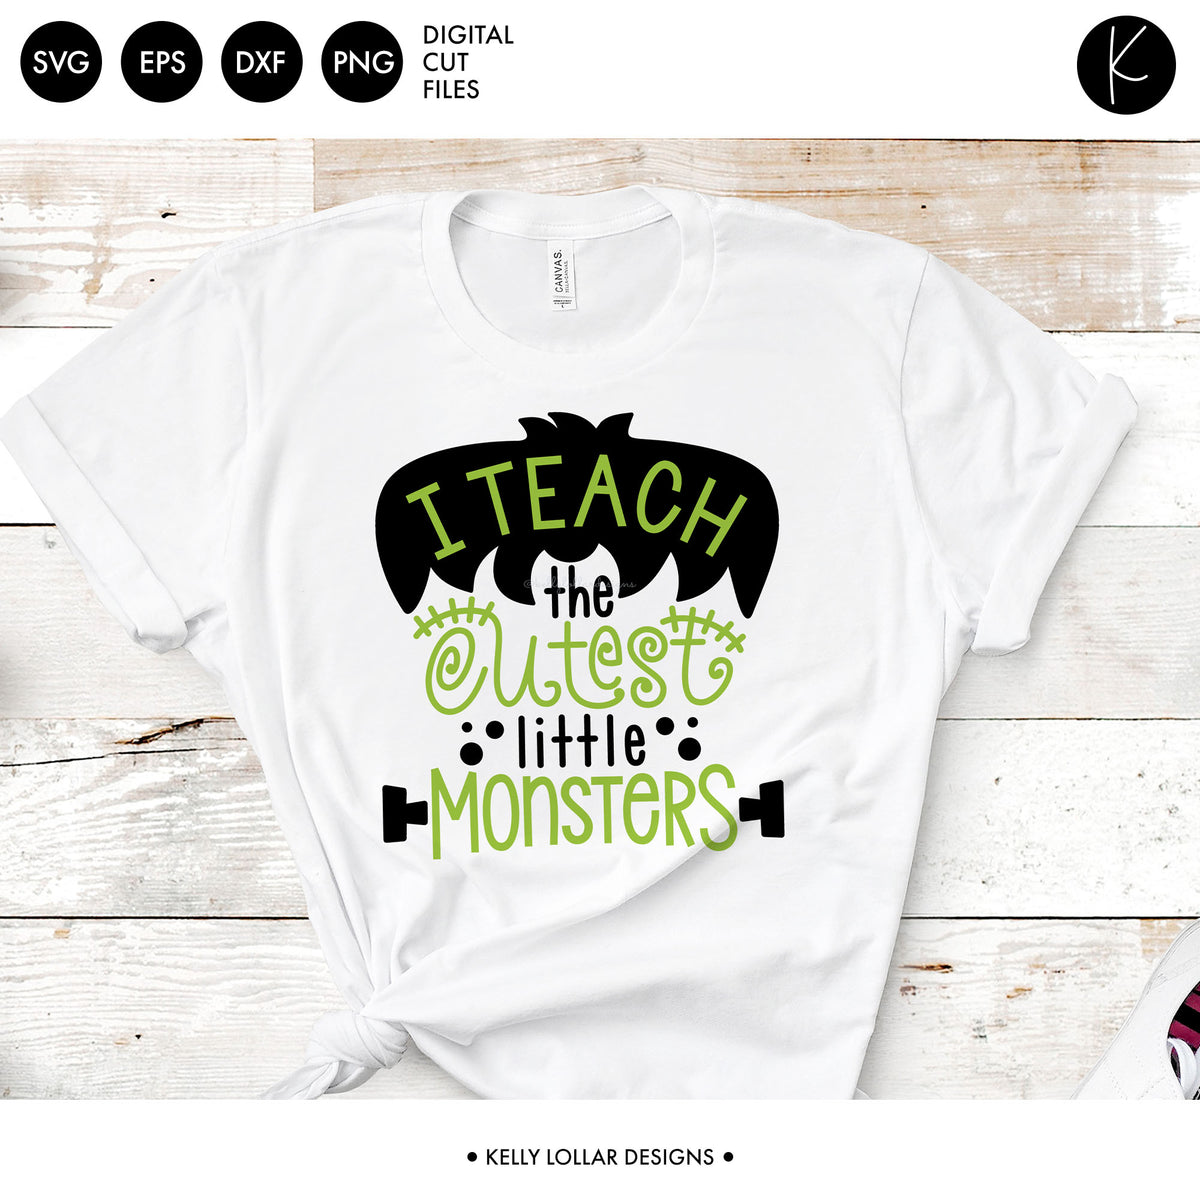 I Teach the Cutest Little Monsters | SVG DXF EPS PNG Cut Files